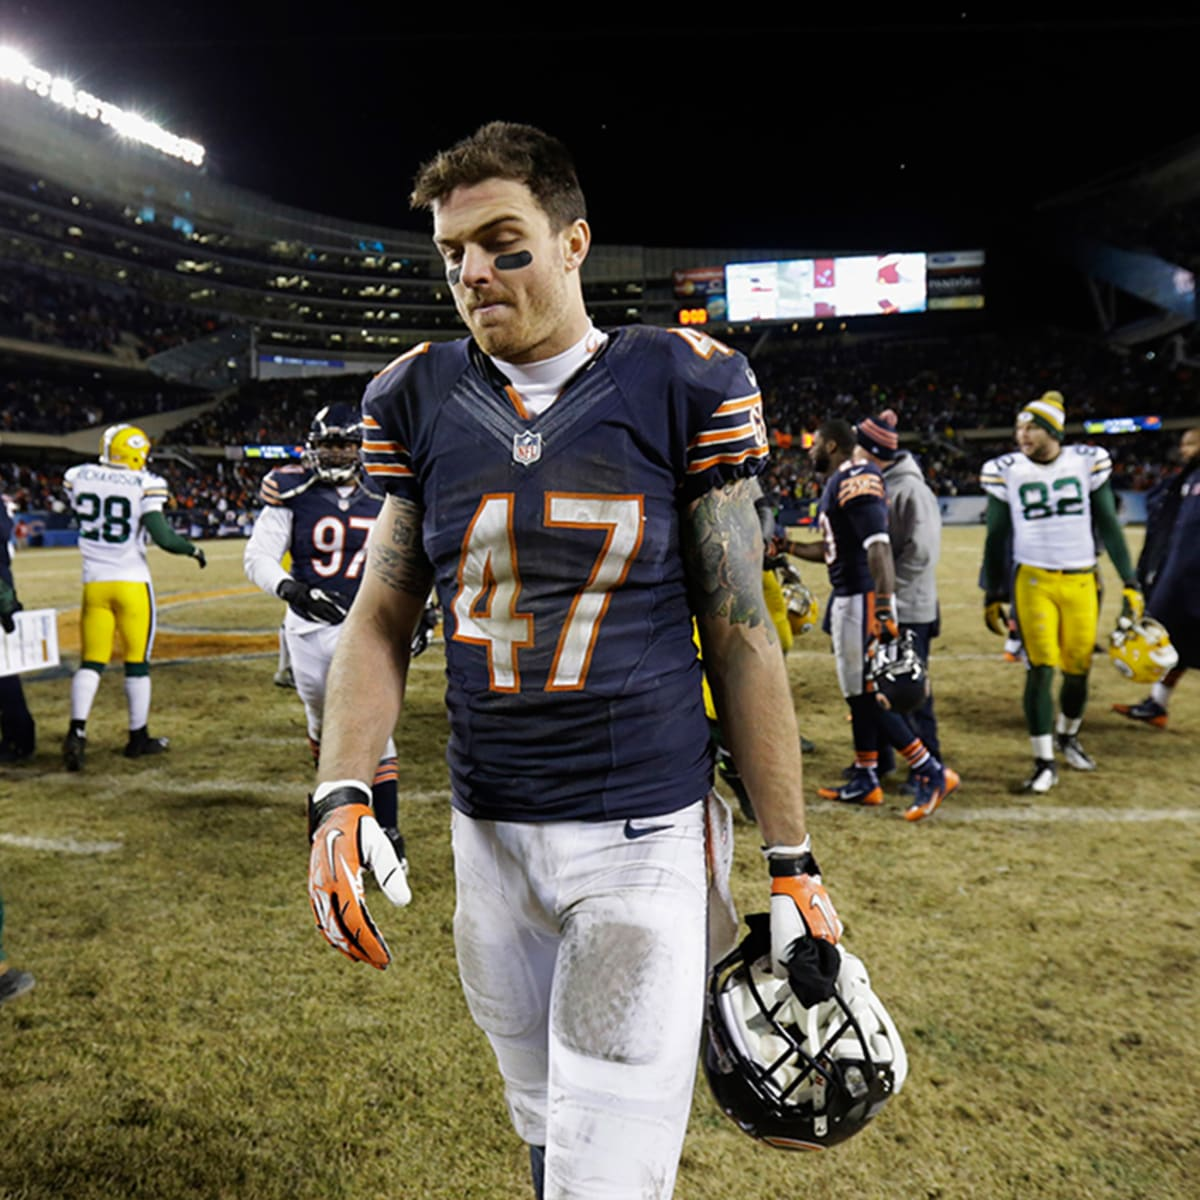 Bears' Chris Conte believes playing in the NFL is worth a shorter life